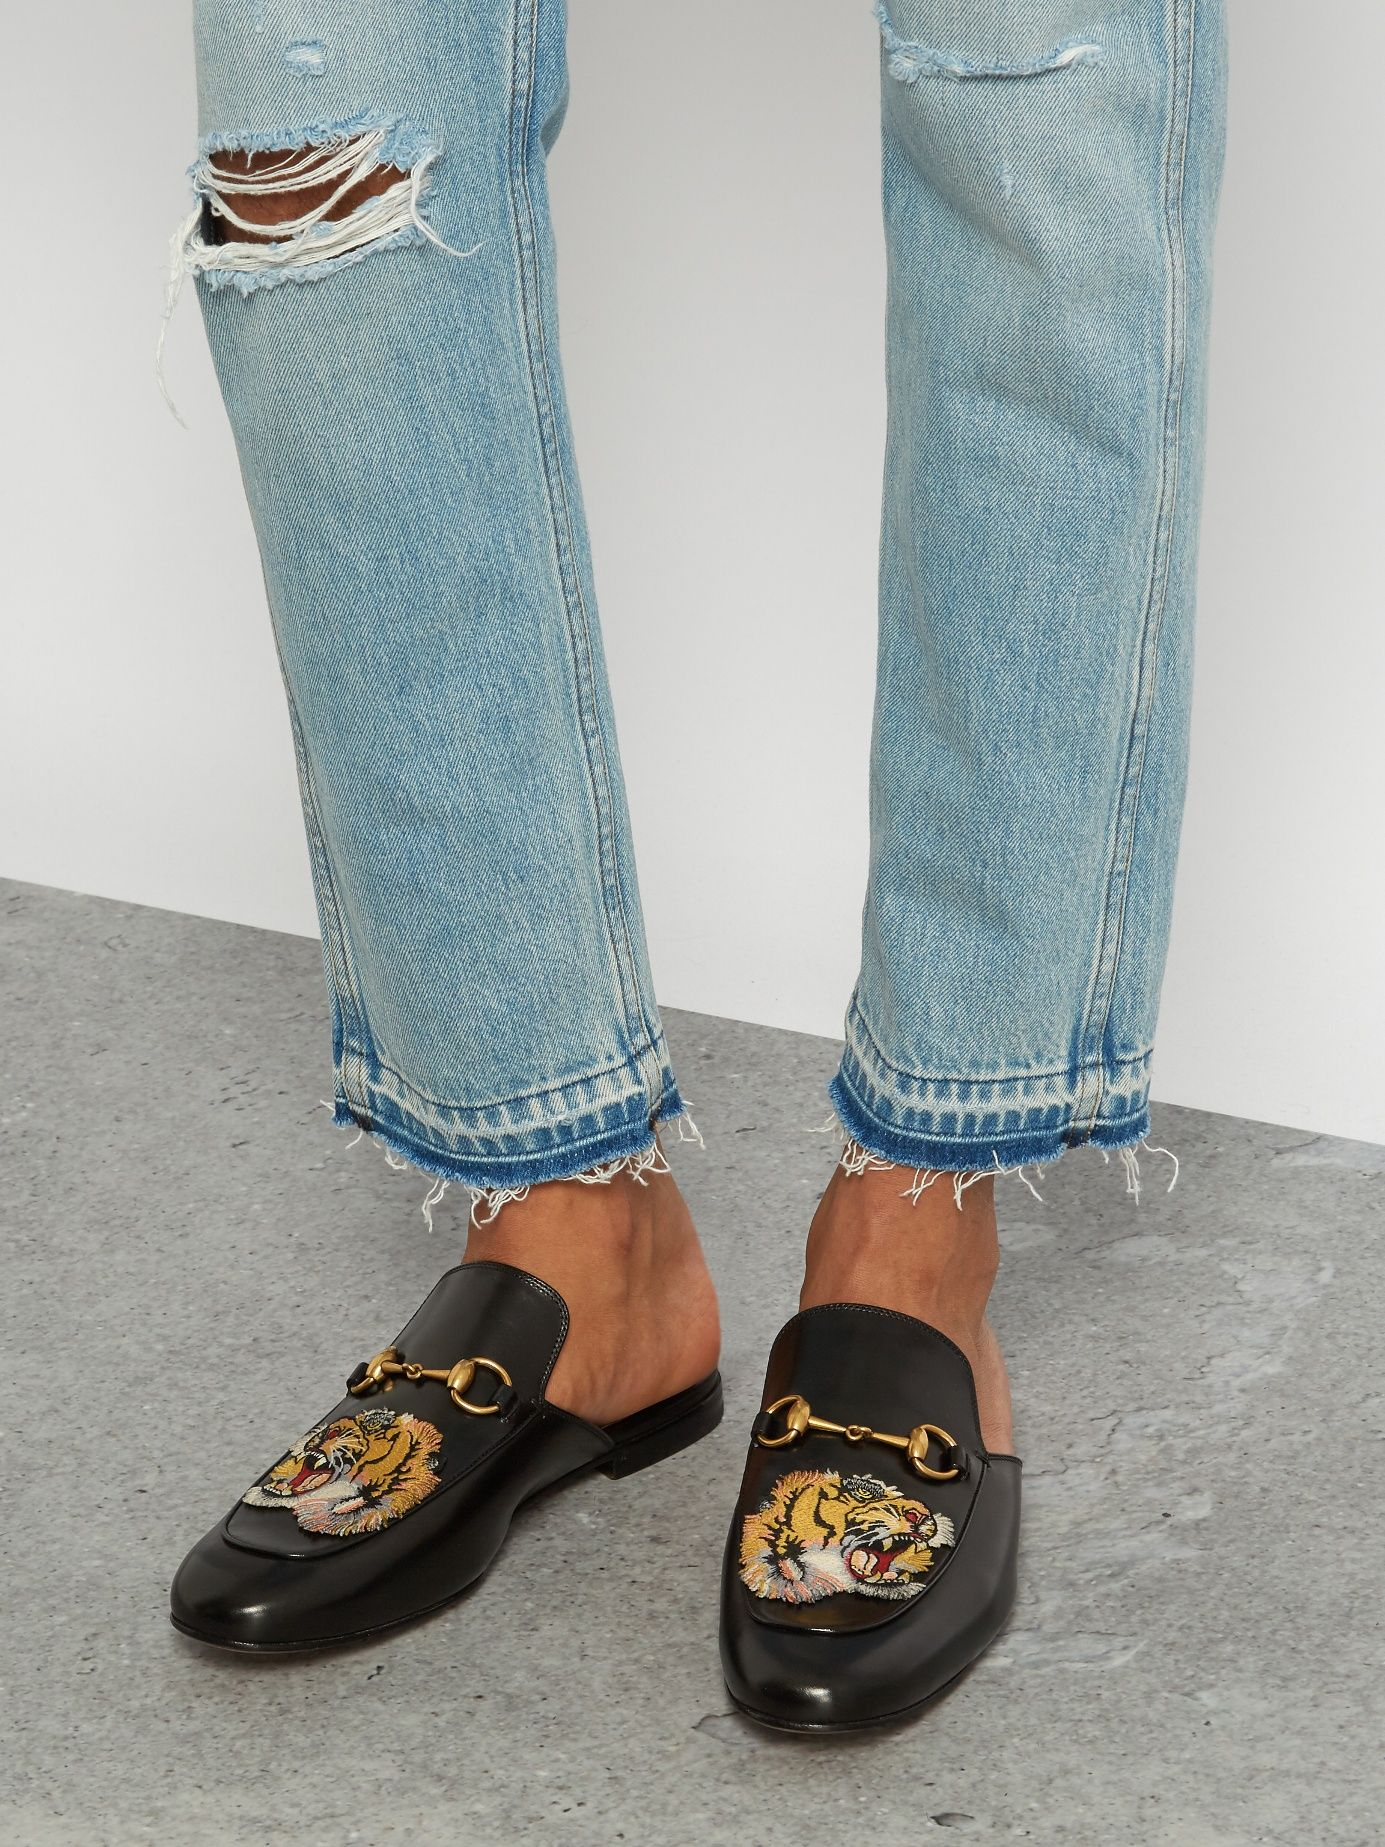 6476763af Click here to buy Gucci Tiger-head embroidered backless loafers at  MATCHESFASHION.COM